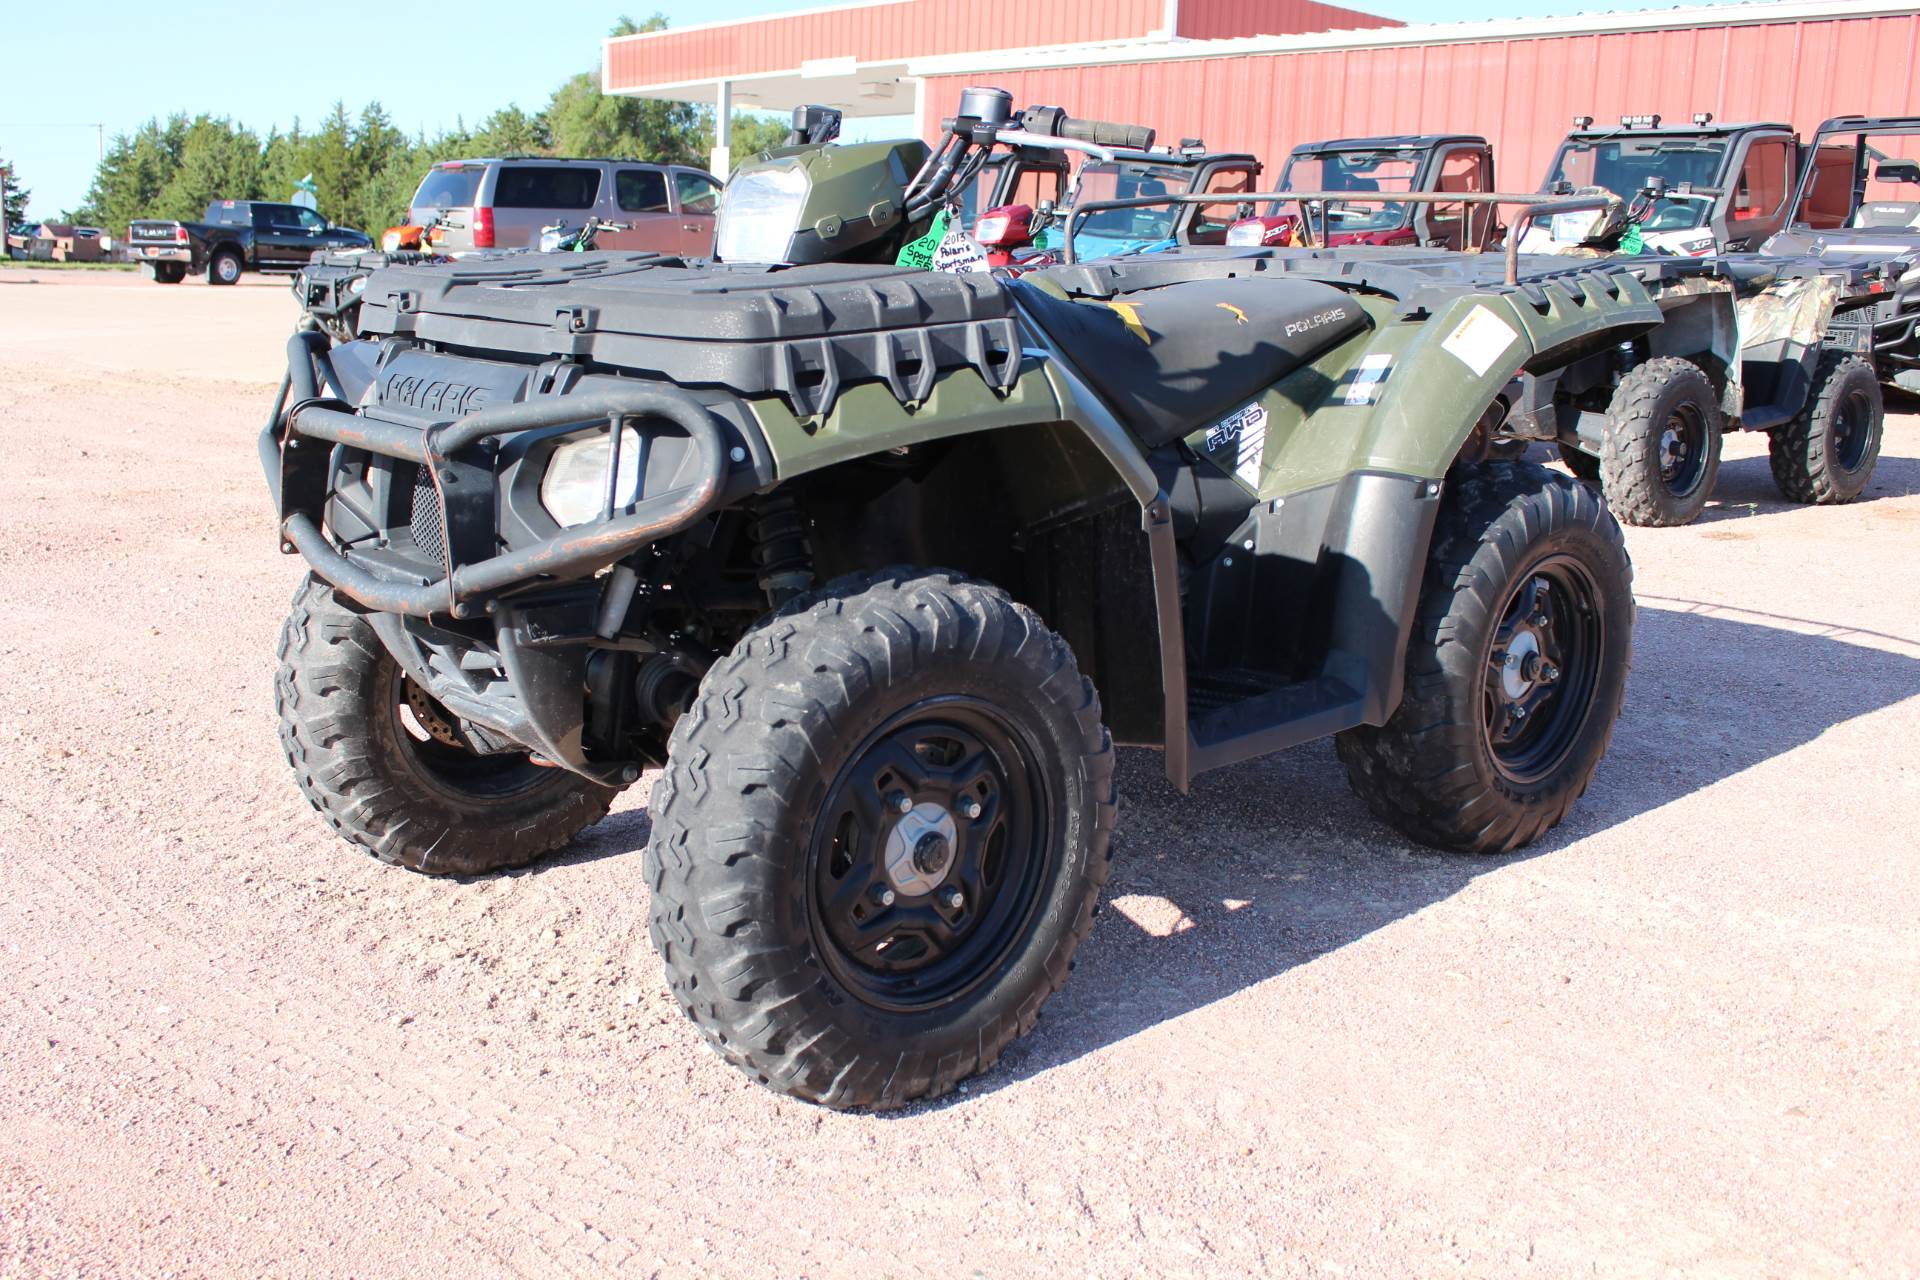 2013 Polaris Sportsman® 550 in Valentine, Nebraska - Photo 2